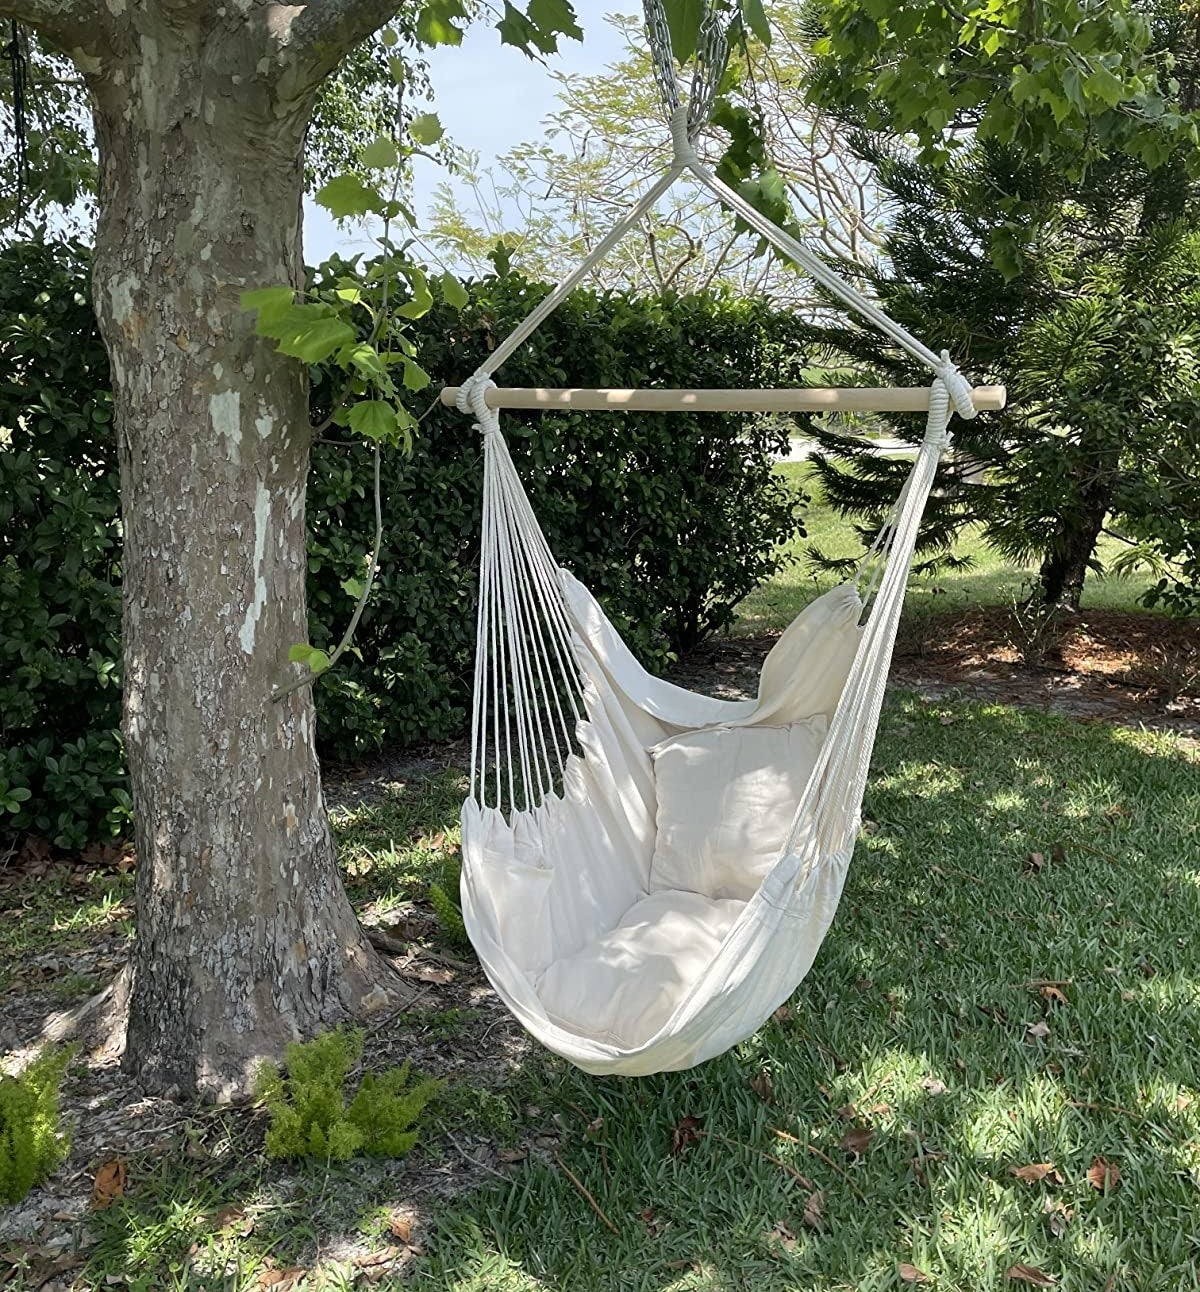 Reviewer photo of a white hammock chair hung from a tree branch